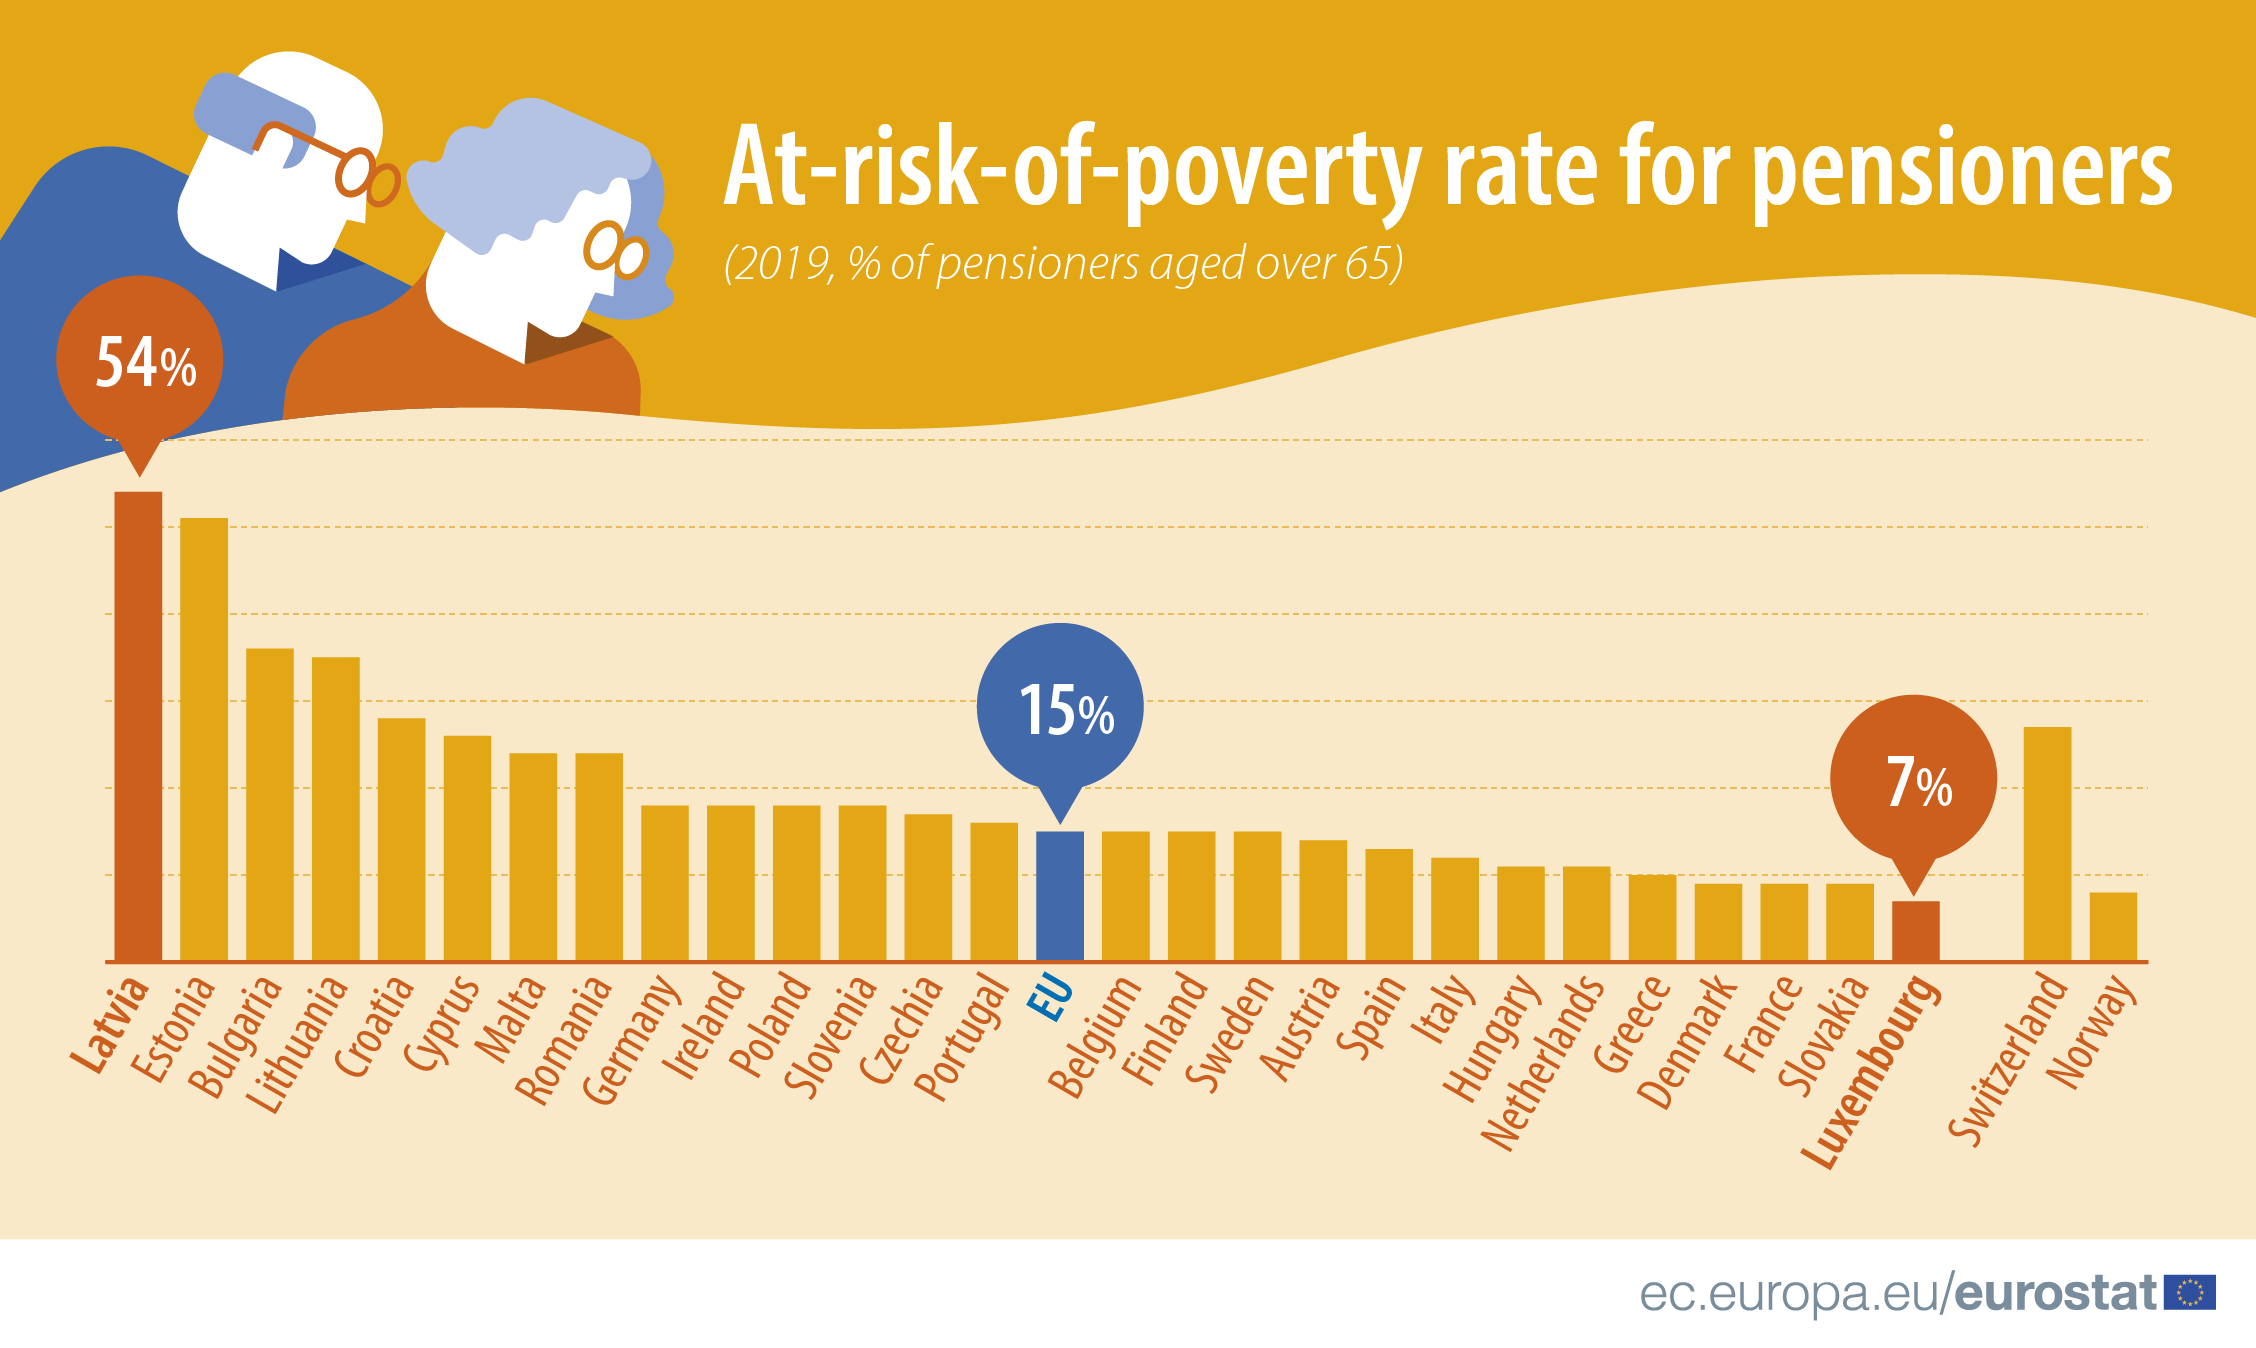 Infographic: At-risk-of-poverty rate for pensioners